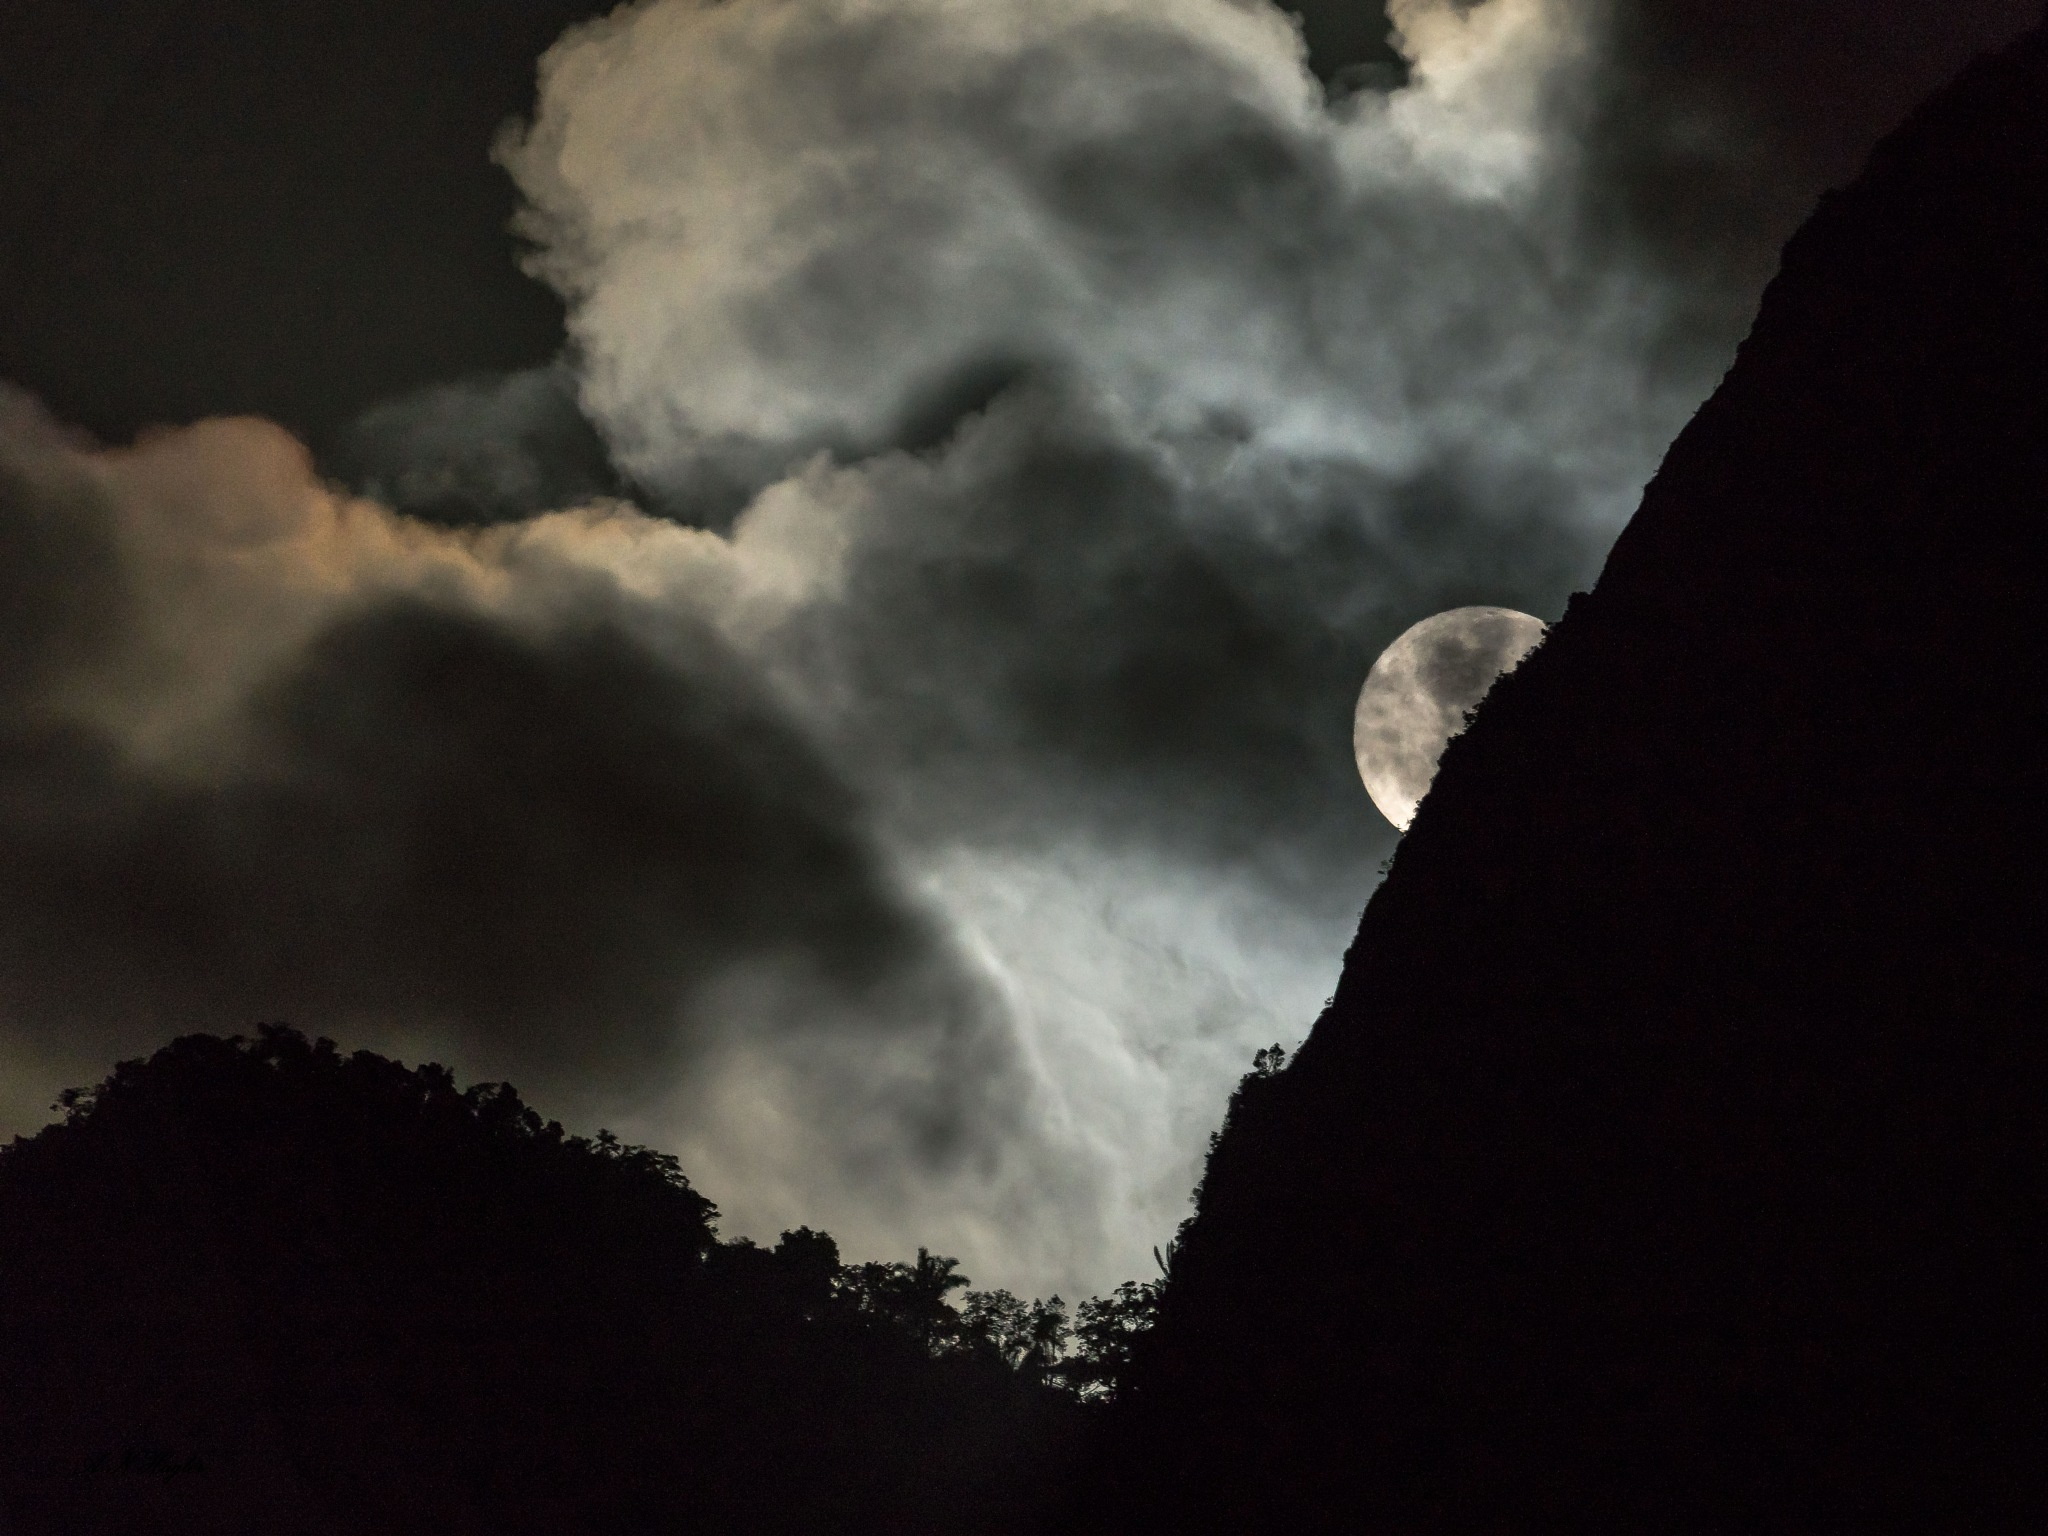 Cloudy tropical mountain moon-set by allenhagler59663852